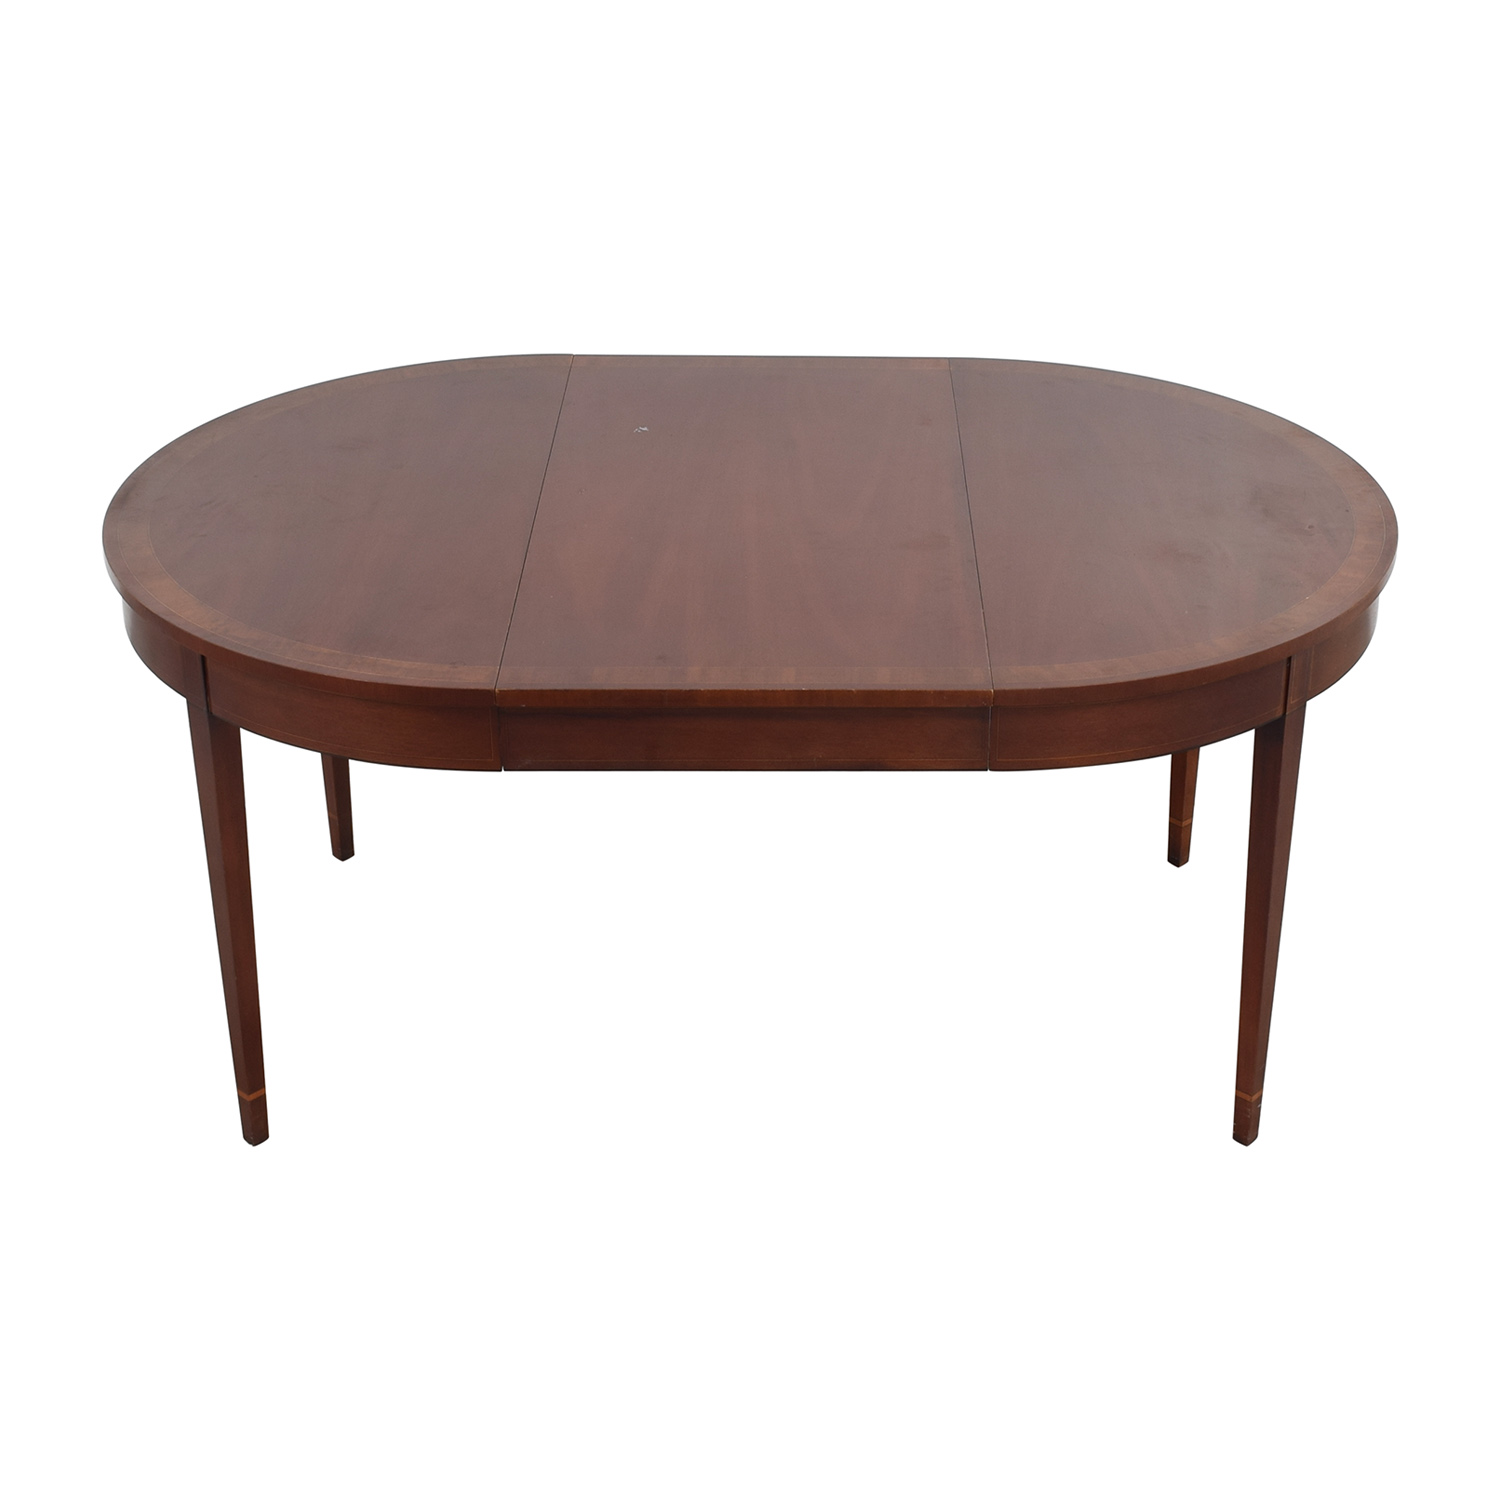 ... Shop Stickley HIC 8301 40 Round Wood Table Stickley Tables ...